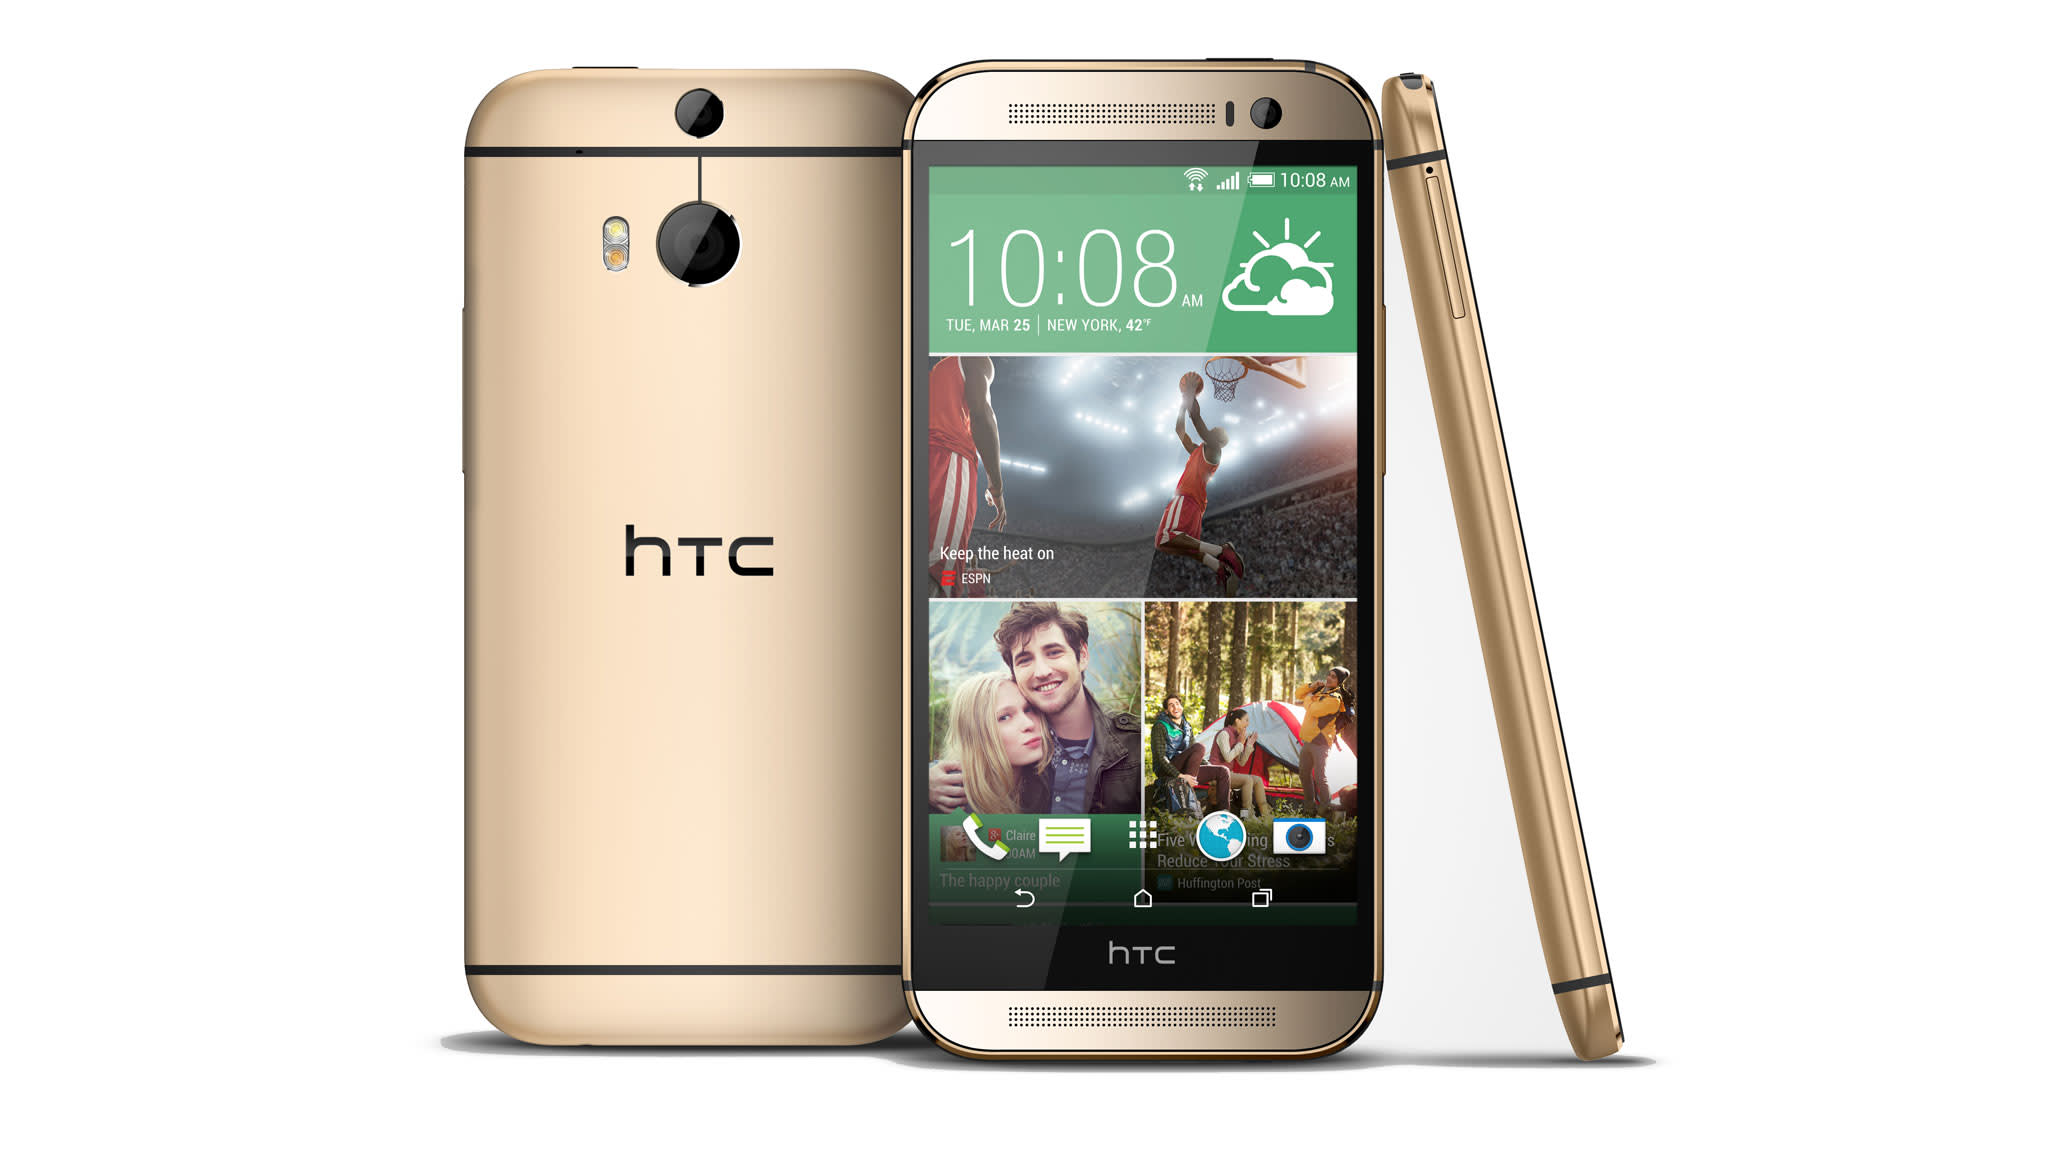 A handset to put HTC back in the conversation | Financial Times